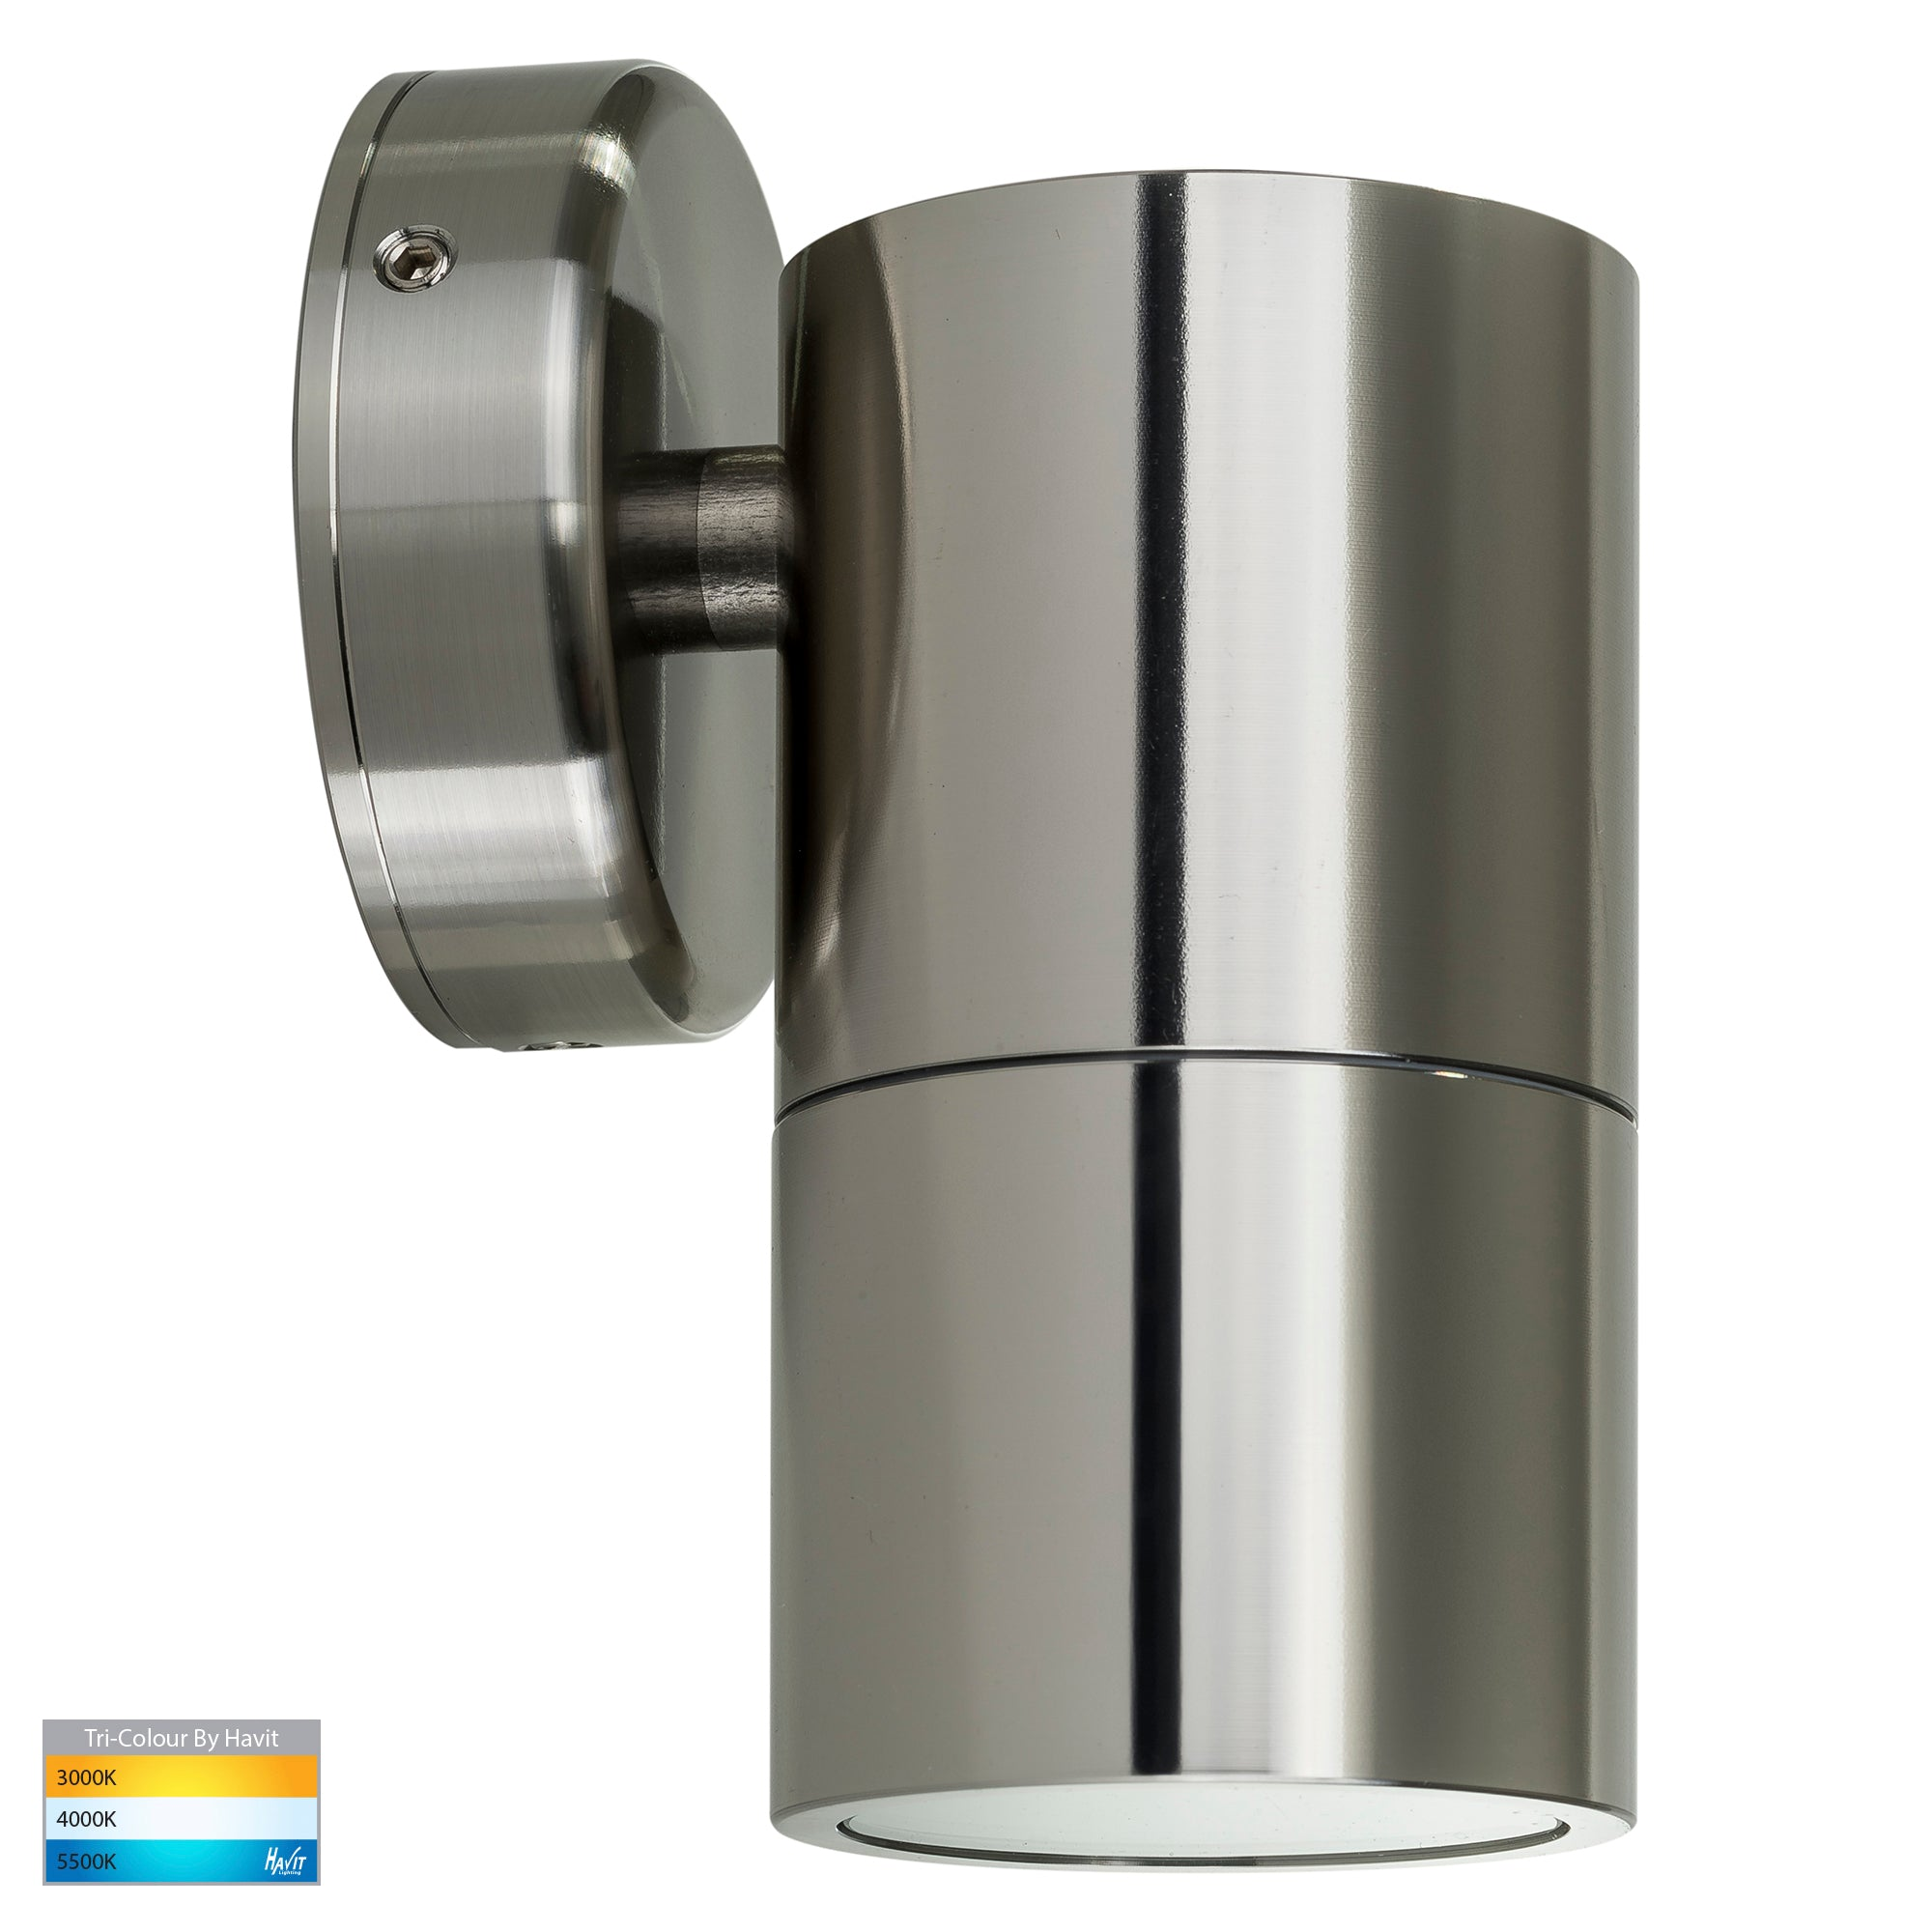 HV1105T-HV1107T - Tivah 316 Stainless Steel TRI Colour Fixed Down Wall Pillar Lights